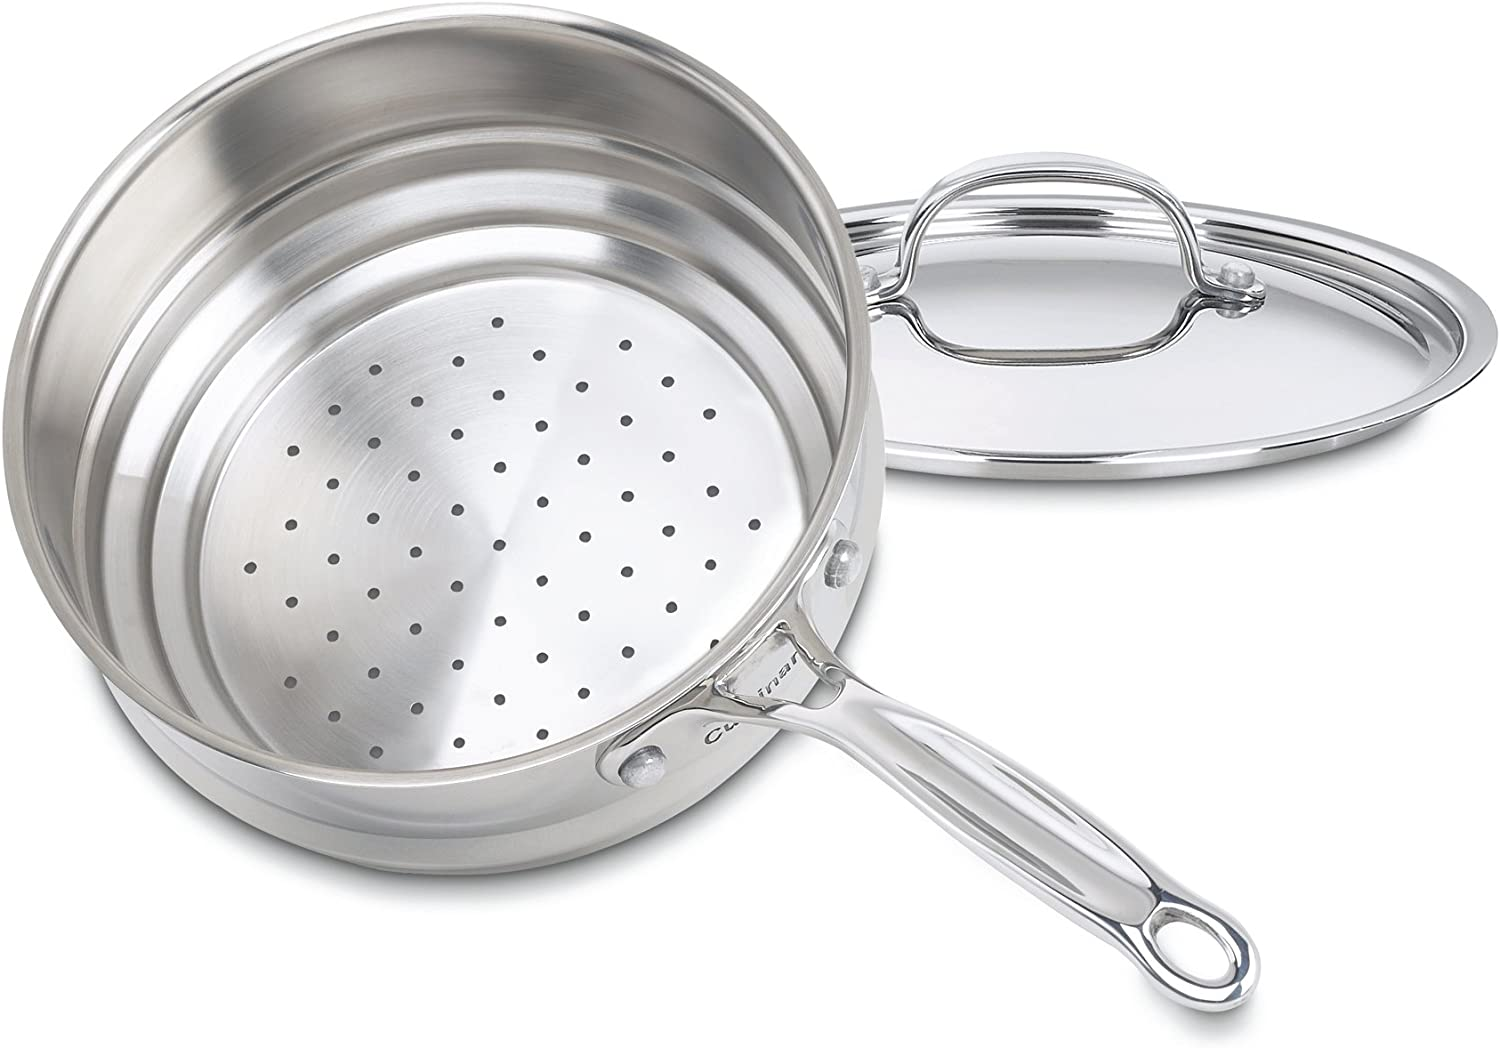 Cuisinart 7116-20 Chef's Classic 20-Centimeter Universal Steamer with Cover